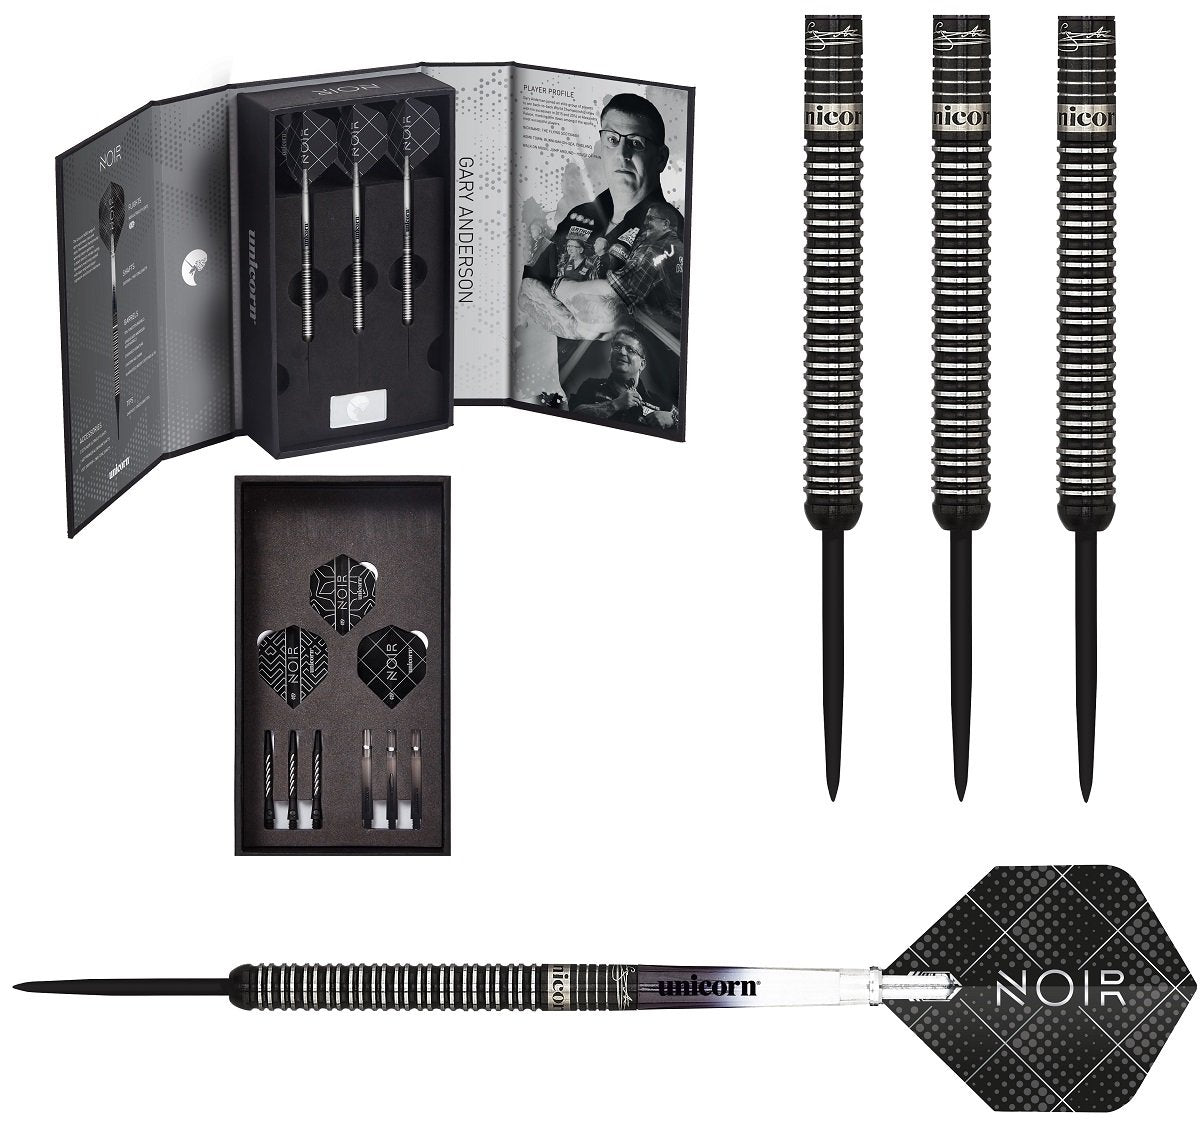 Gary Anderson Noir Deluxe Player Edition Phase 3 World Champion Steel Tip  Darts by Unicorn